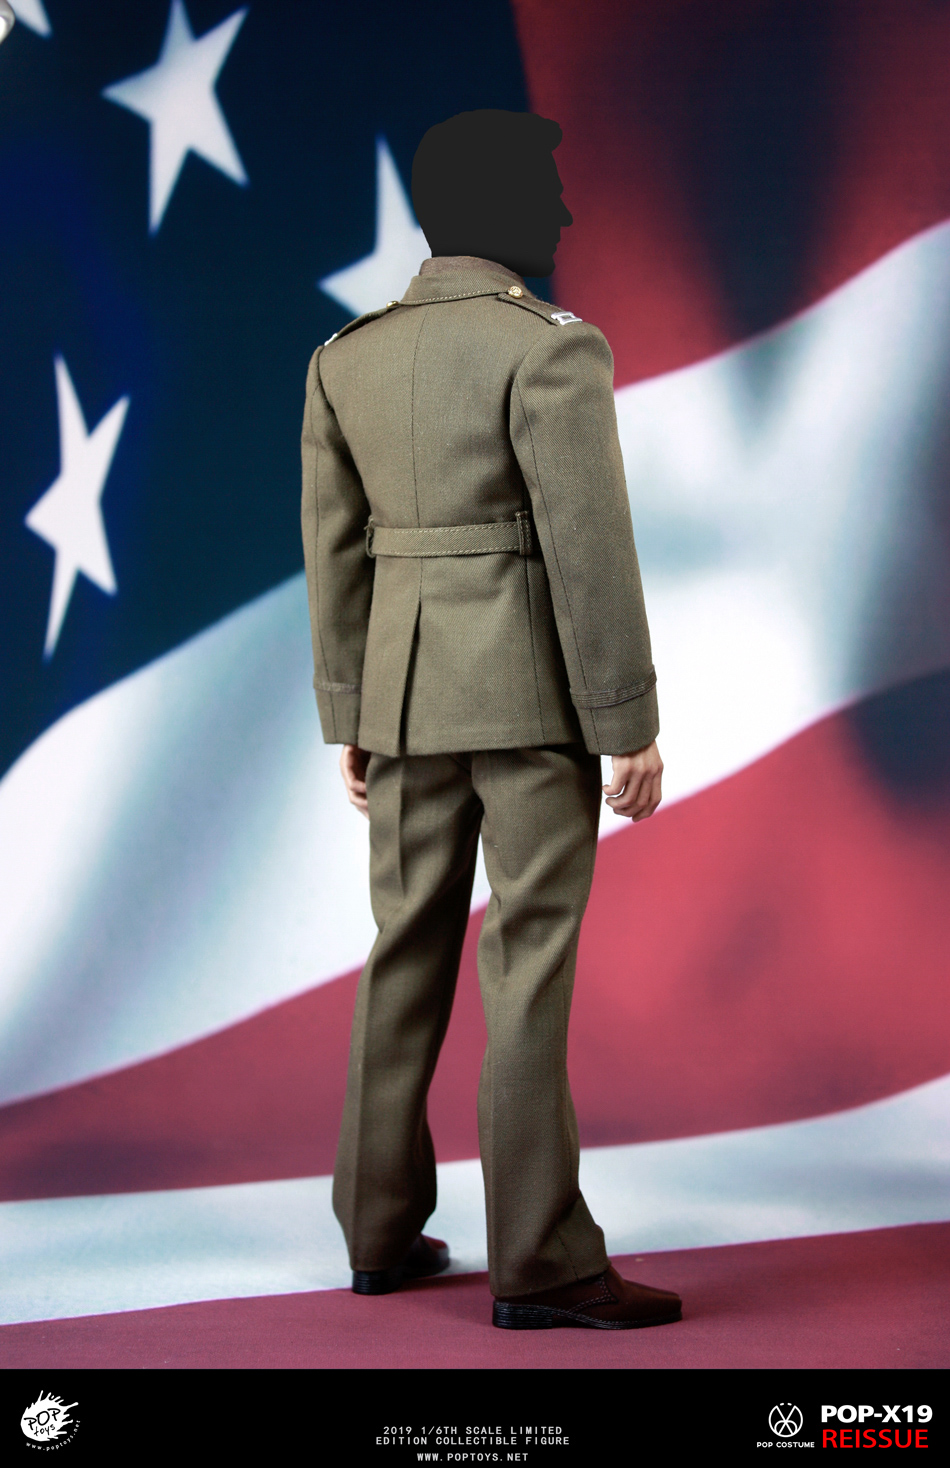 male - NEW PRODUCT: POPTOYS: 1/6 Series X19 World War II Edition Golden Age US Team Uniform Uniform Set - 19 Years Reprint 15021510